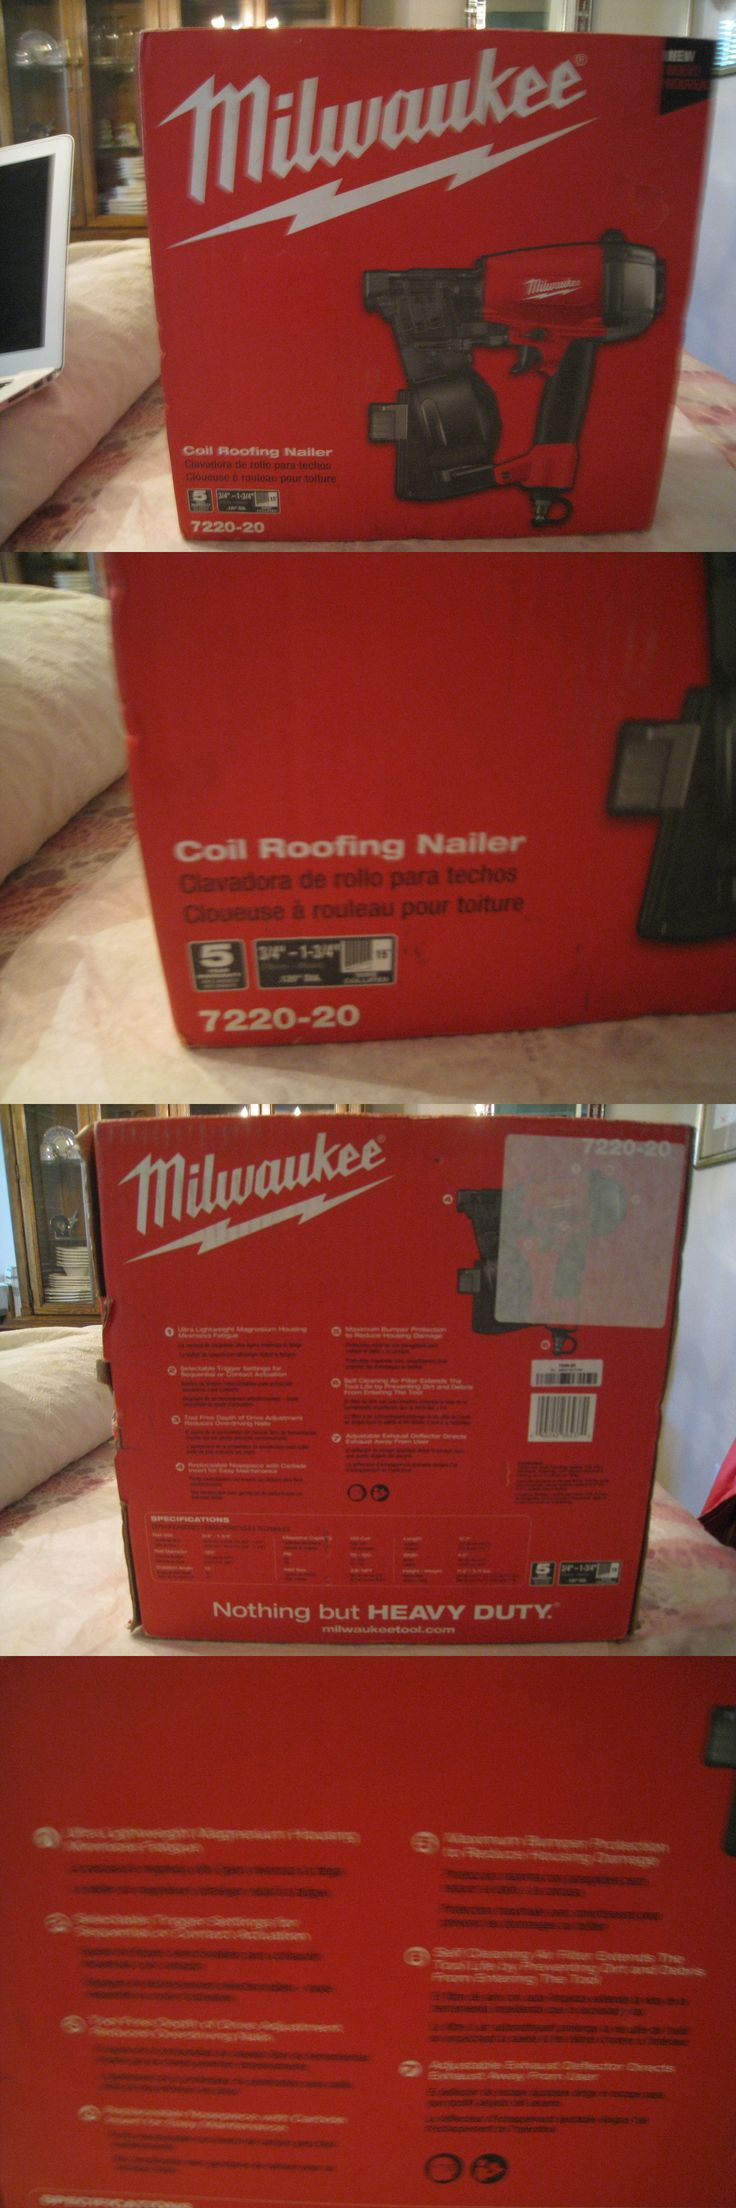 Roofing Guns 42243: New Milwaukee 7220-20 Coil Roofing Nail Gun -> BUY IT NOW ONLY: $150 on eBay!